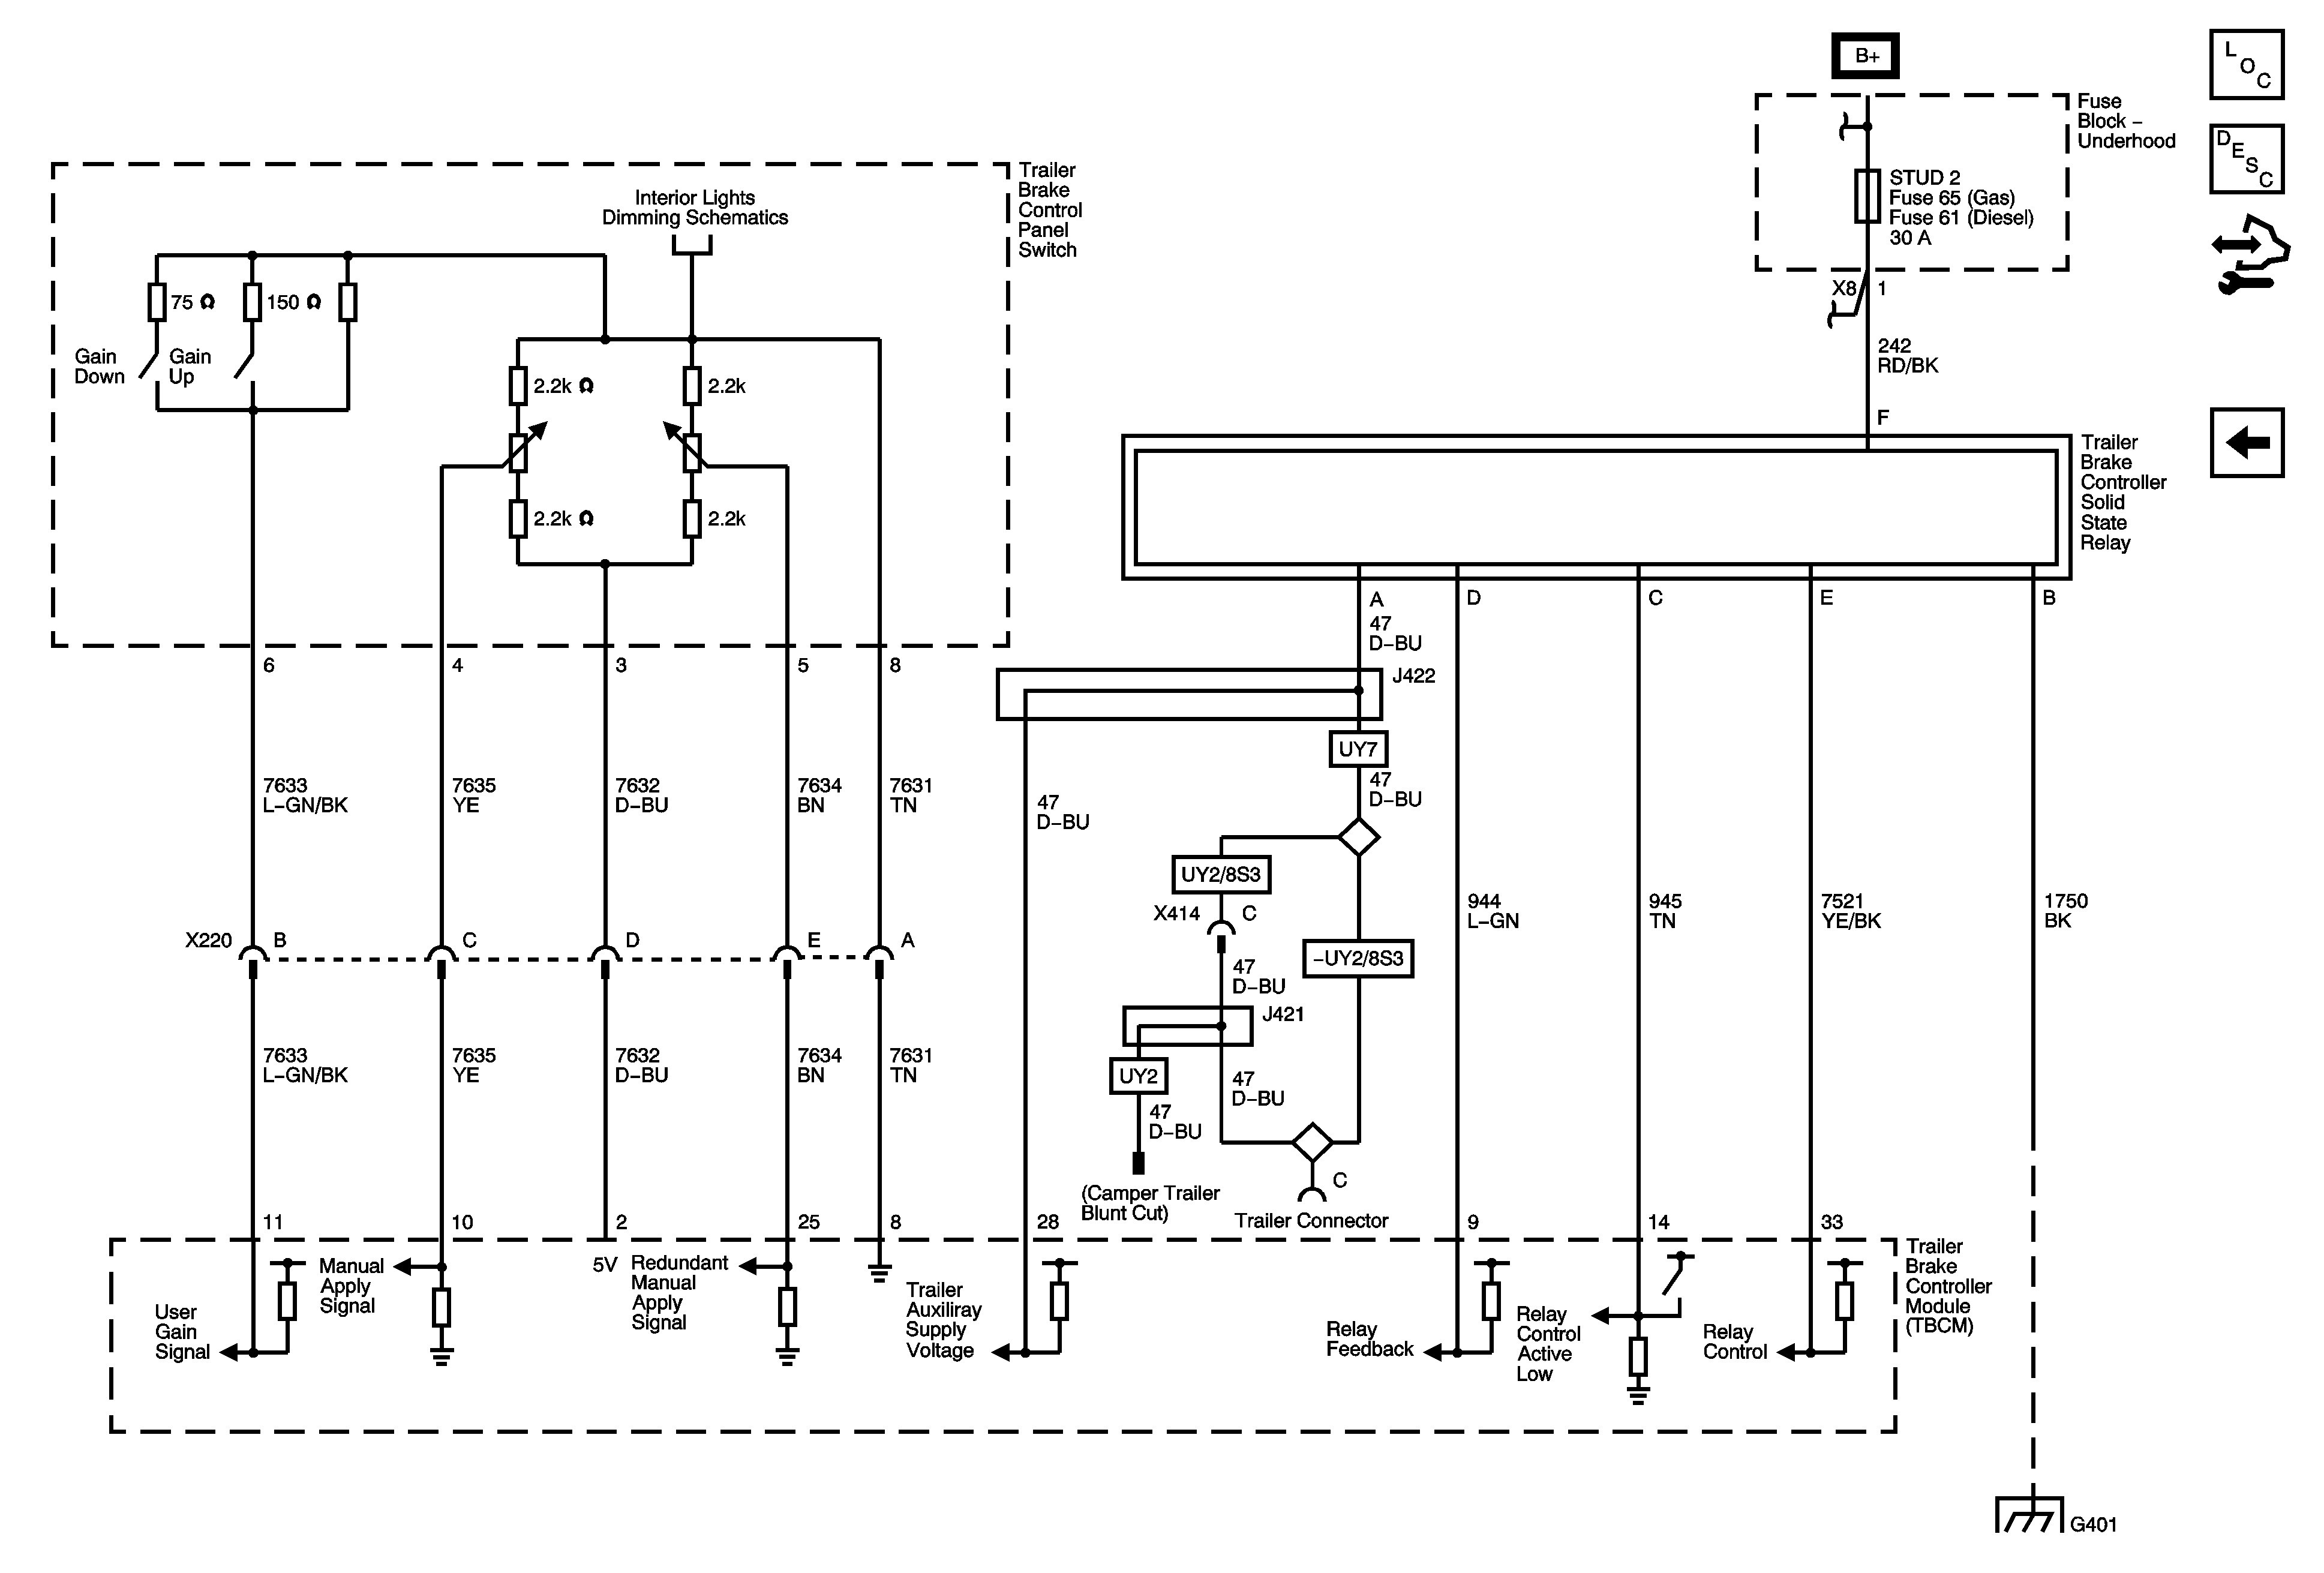 2011 Gmc Trailer Wiring Diagram - Today Wiring Diagram - 2011 Dodge 3500 Trailer Wiring Diagram